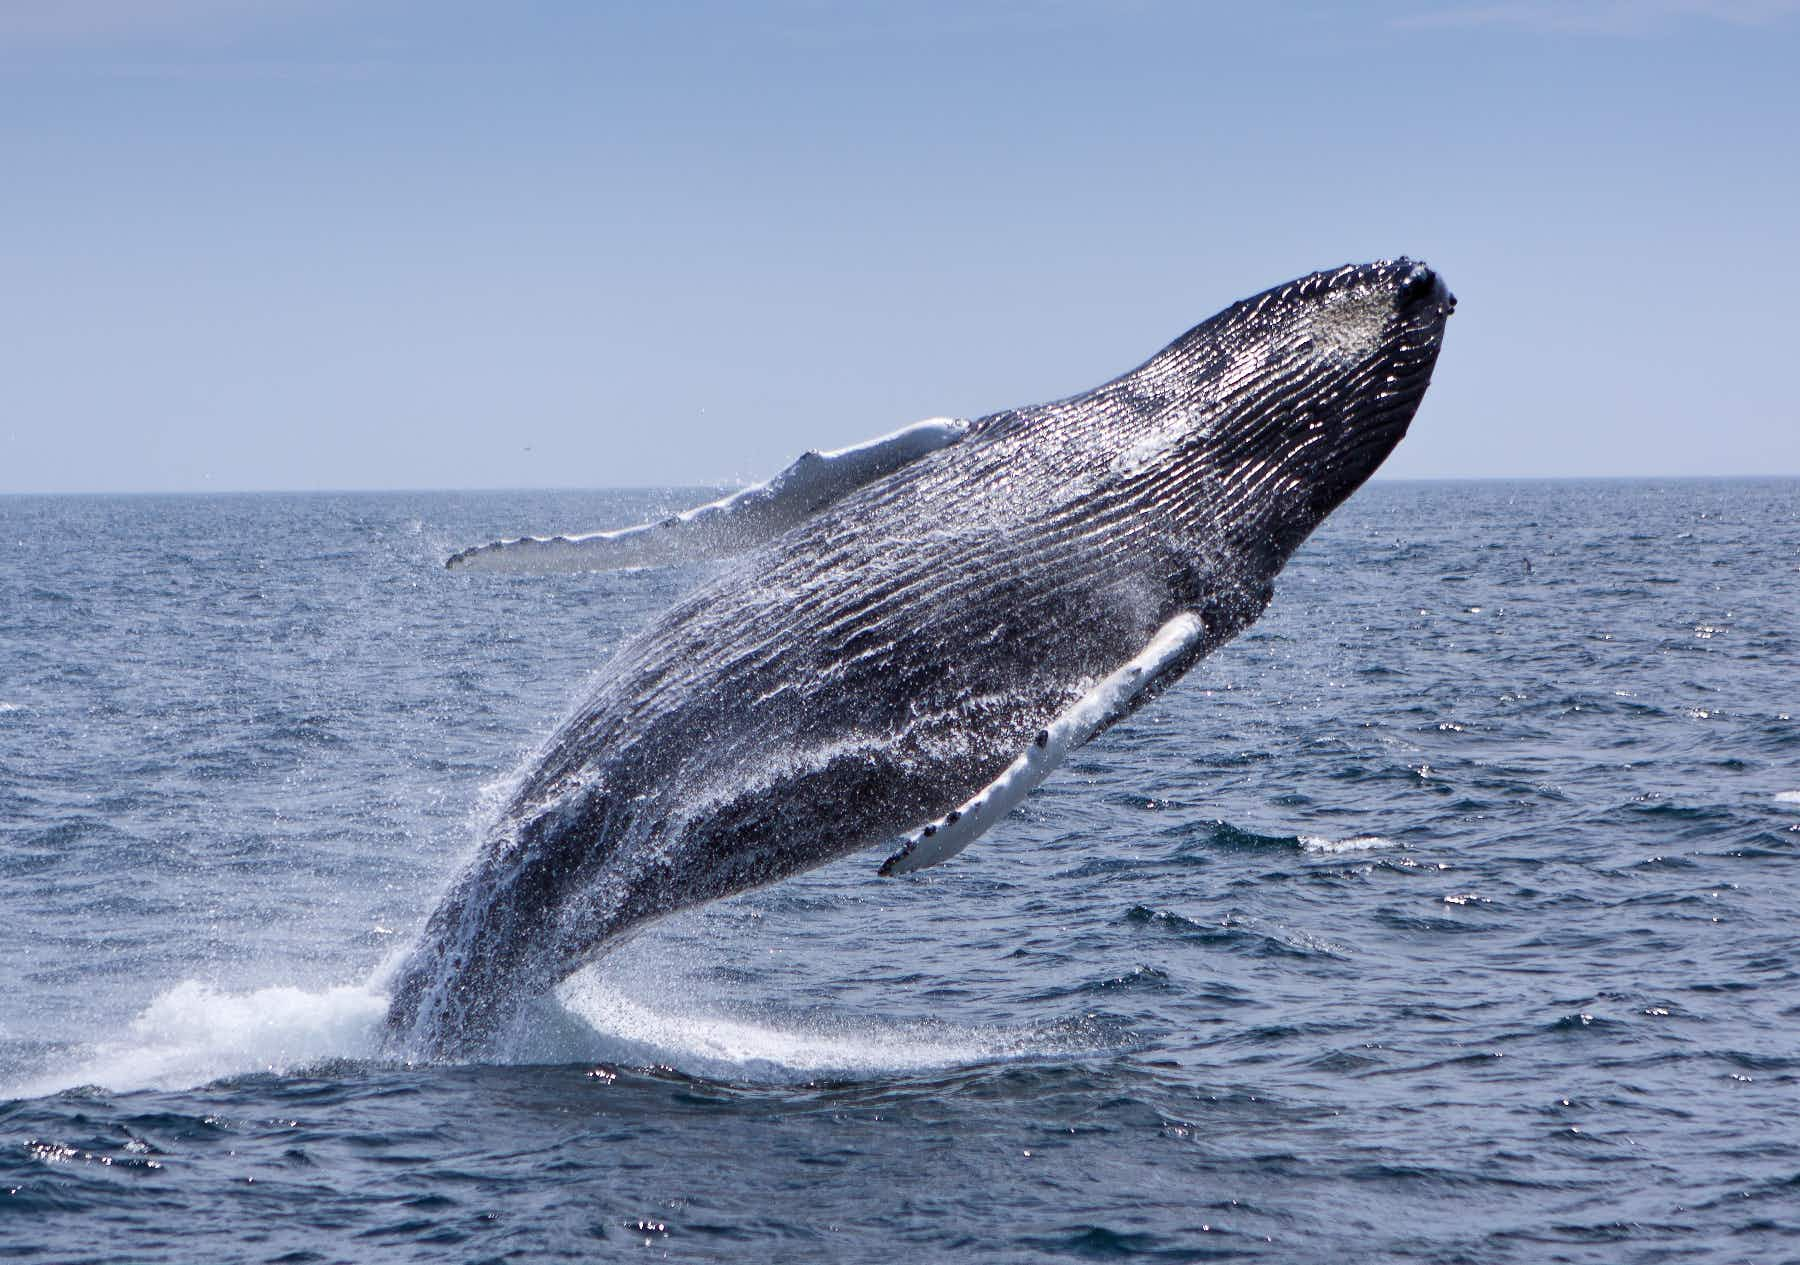 Massachusetts has a new 200 mile whale trail celebrating its maritime history